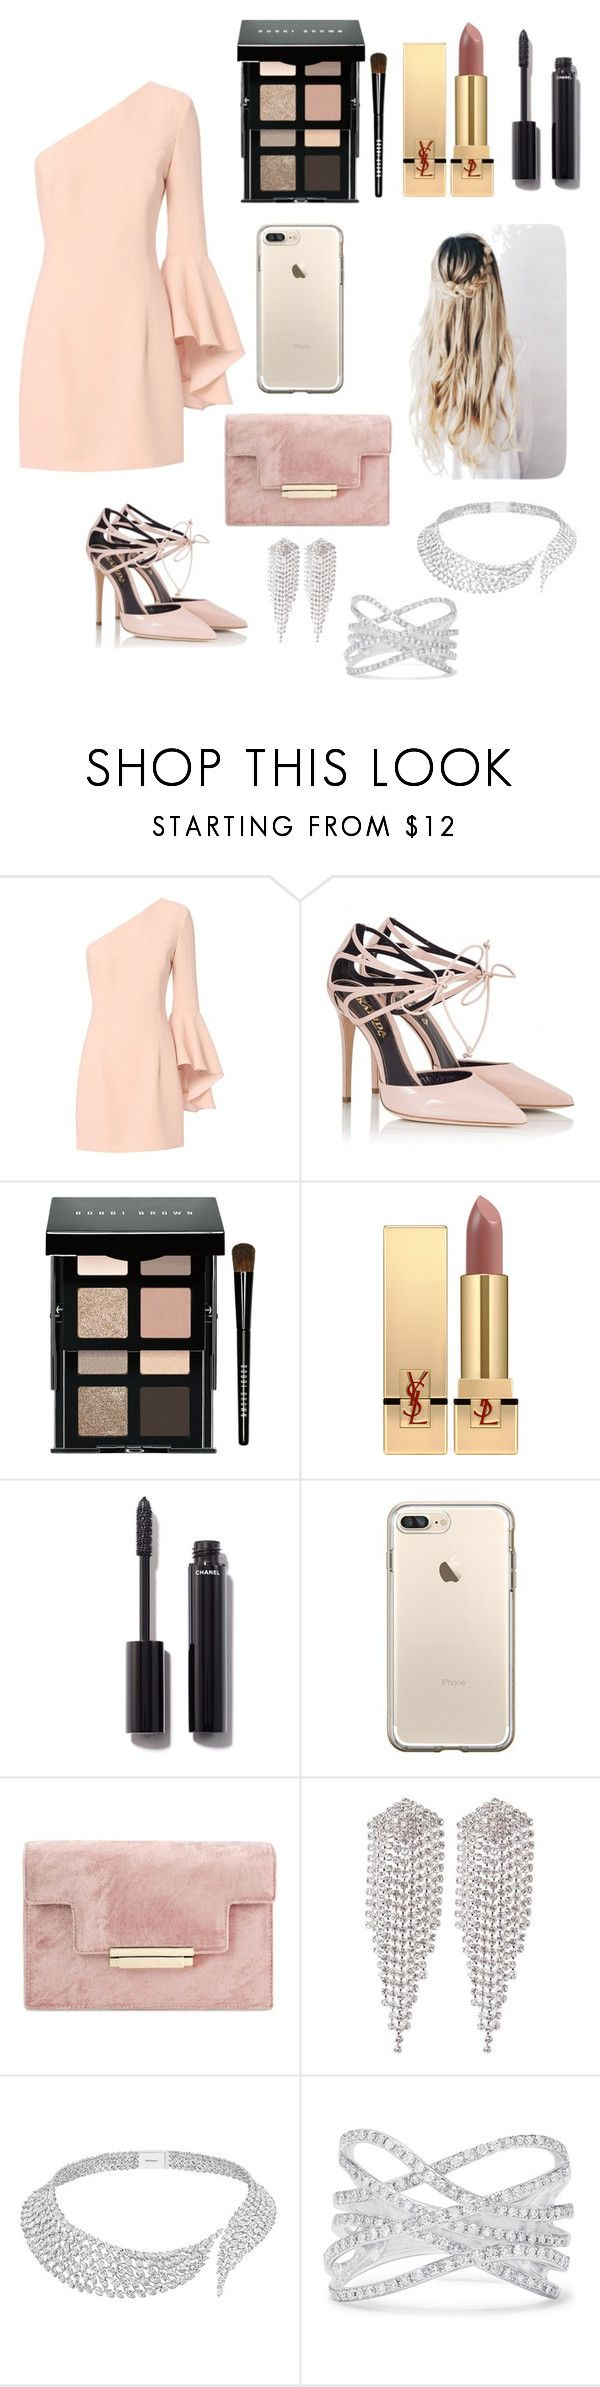 """""""DIAMONDS"""" by simone89 ❤ liked on Polyvore featuring Exclusive for Intermix, Fratelli Karida, Bobbi Brown Cosmetics, Yves Saint Laurent, Chanel, sweet deluxe, Messika and Effy Jewelry"""